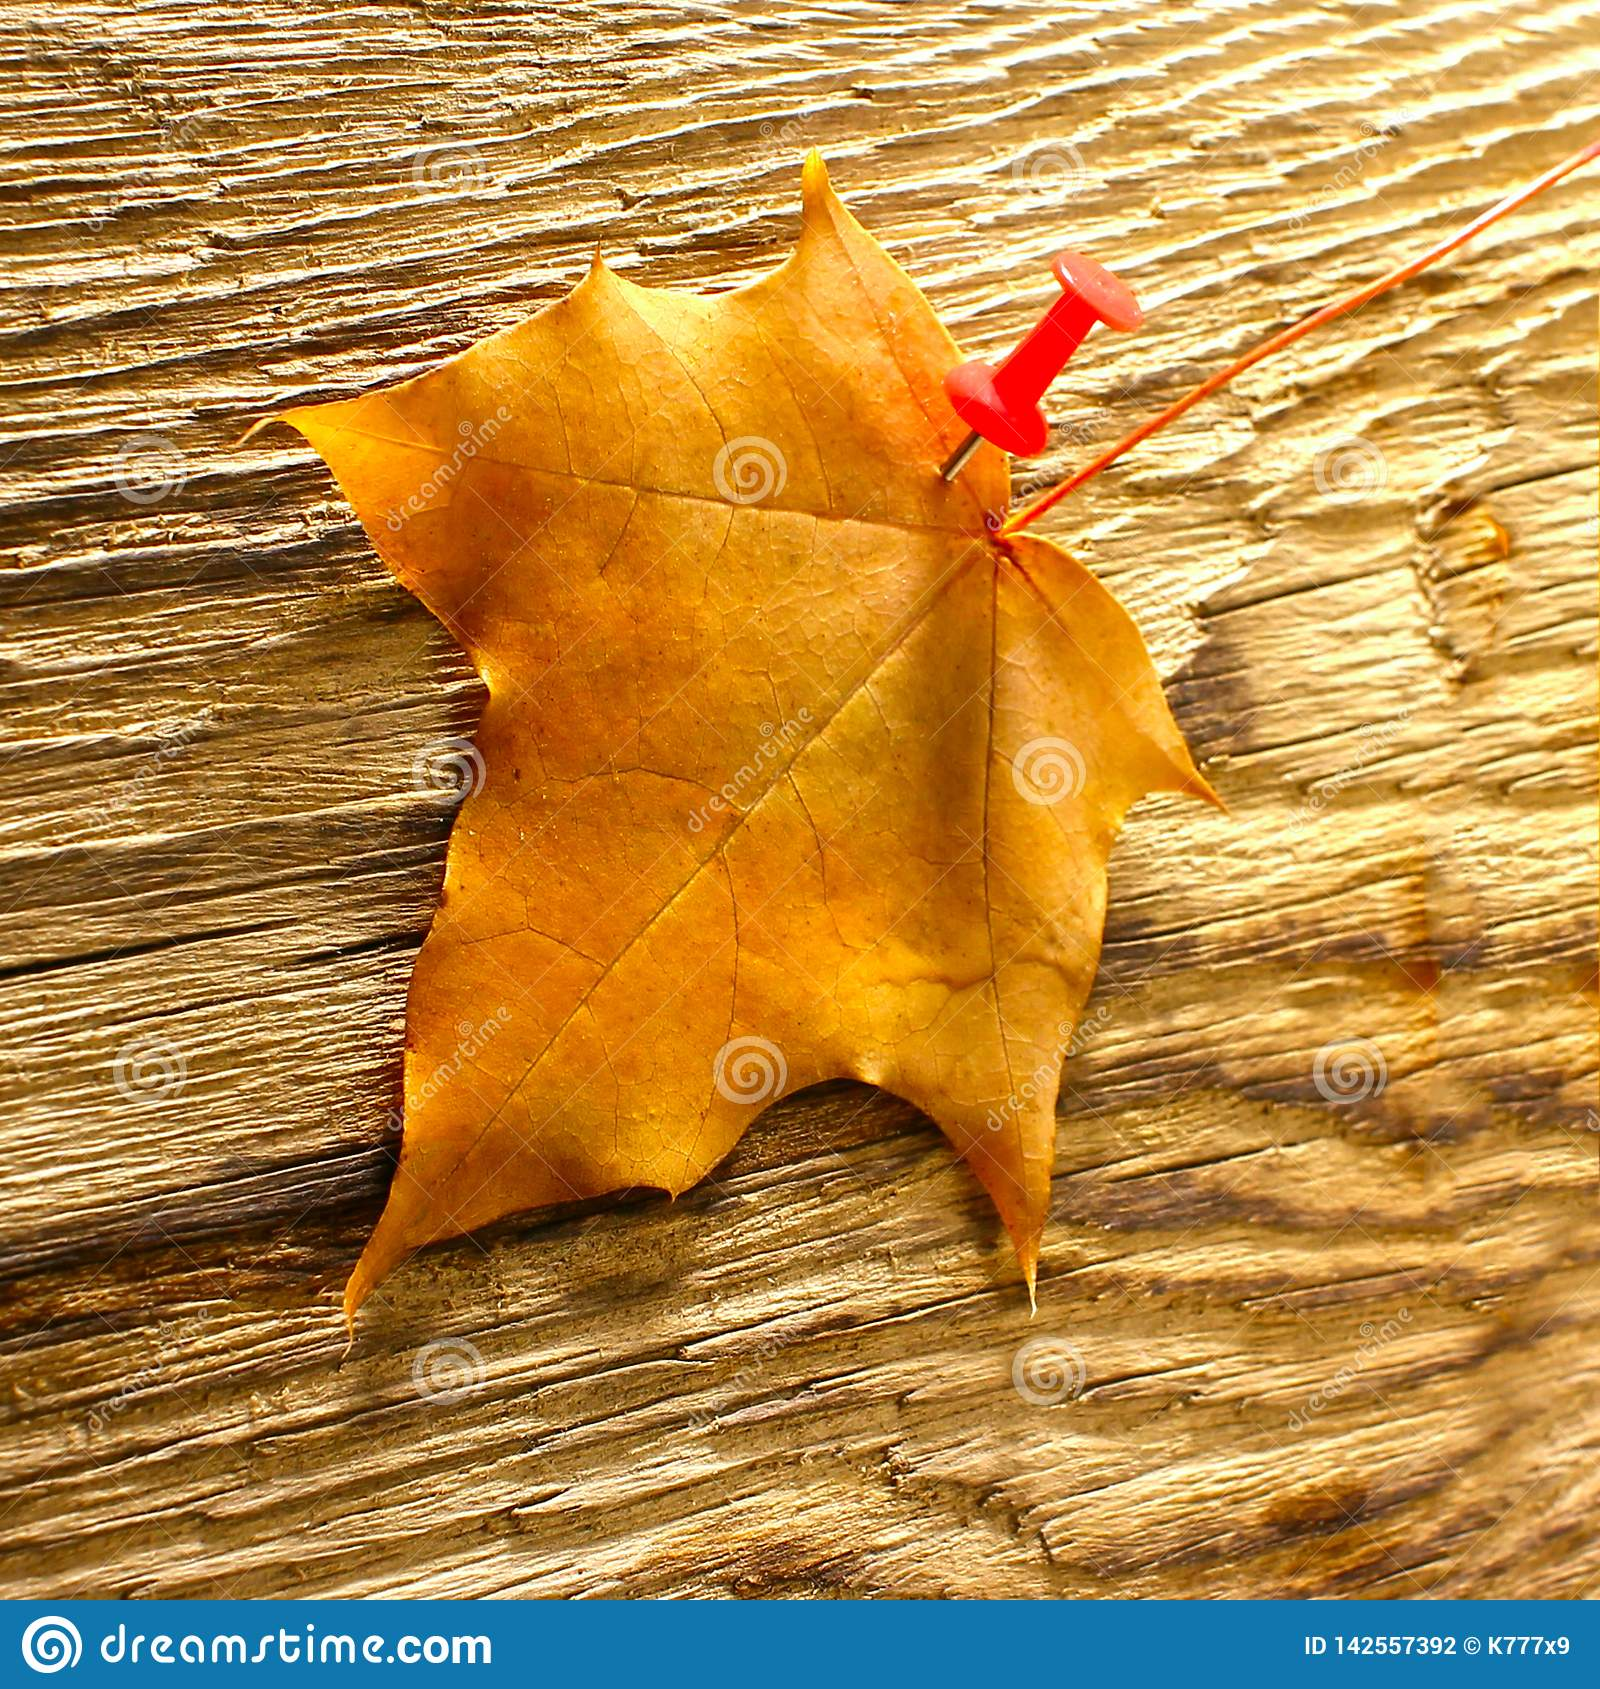 Autumn maple leaves clipart on wooden table.Falling leaves natural background